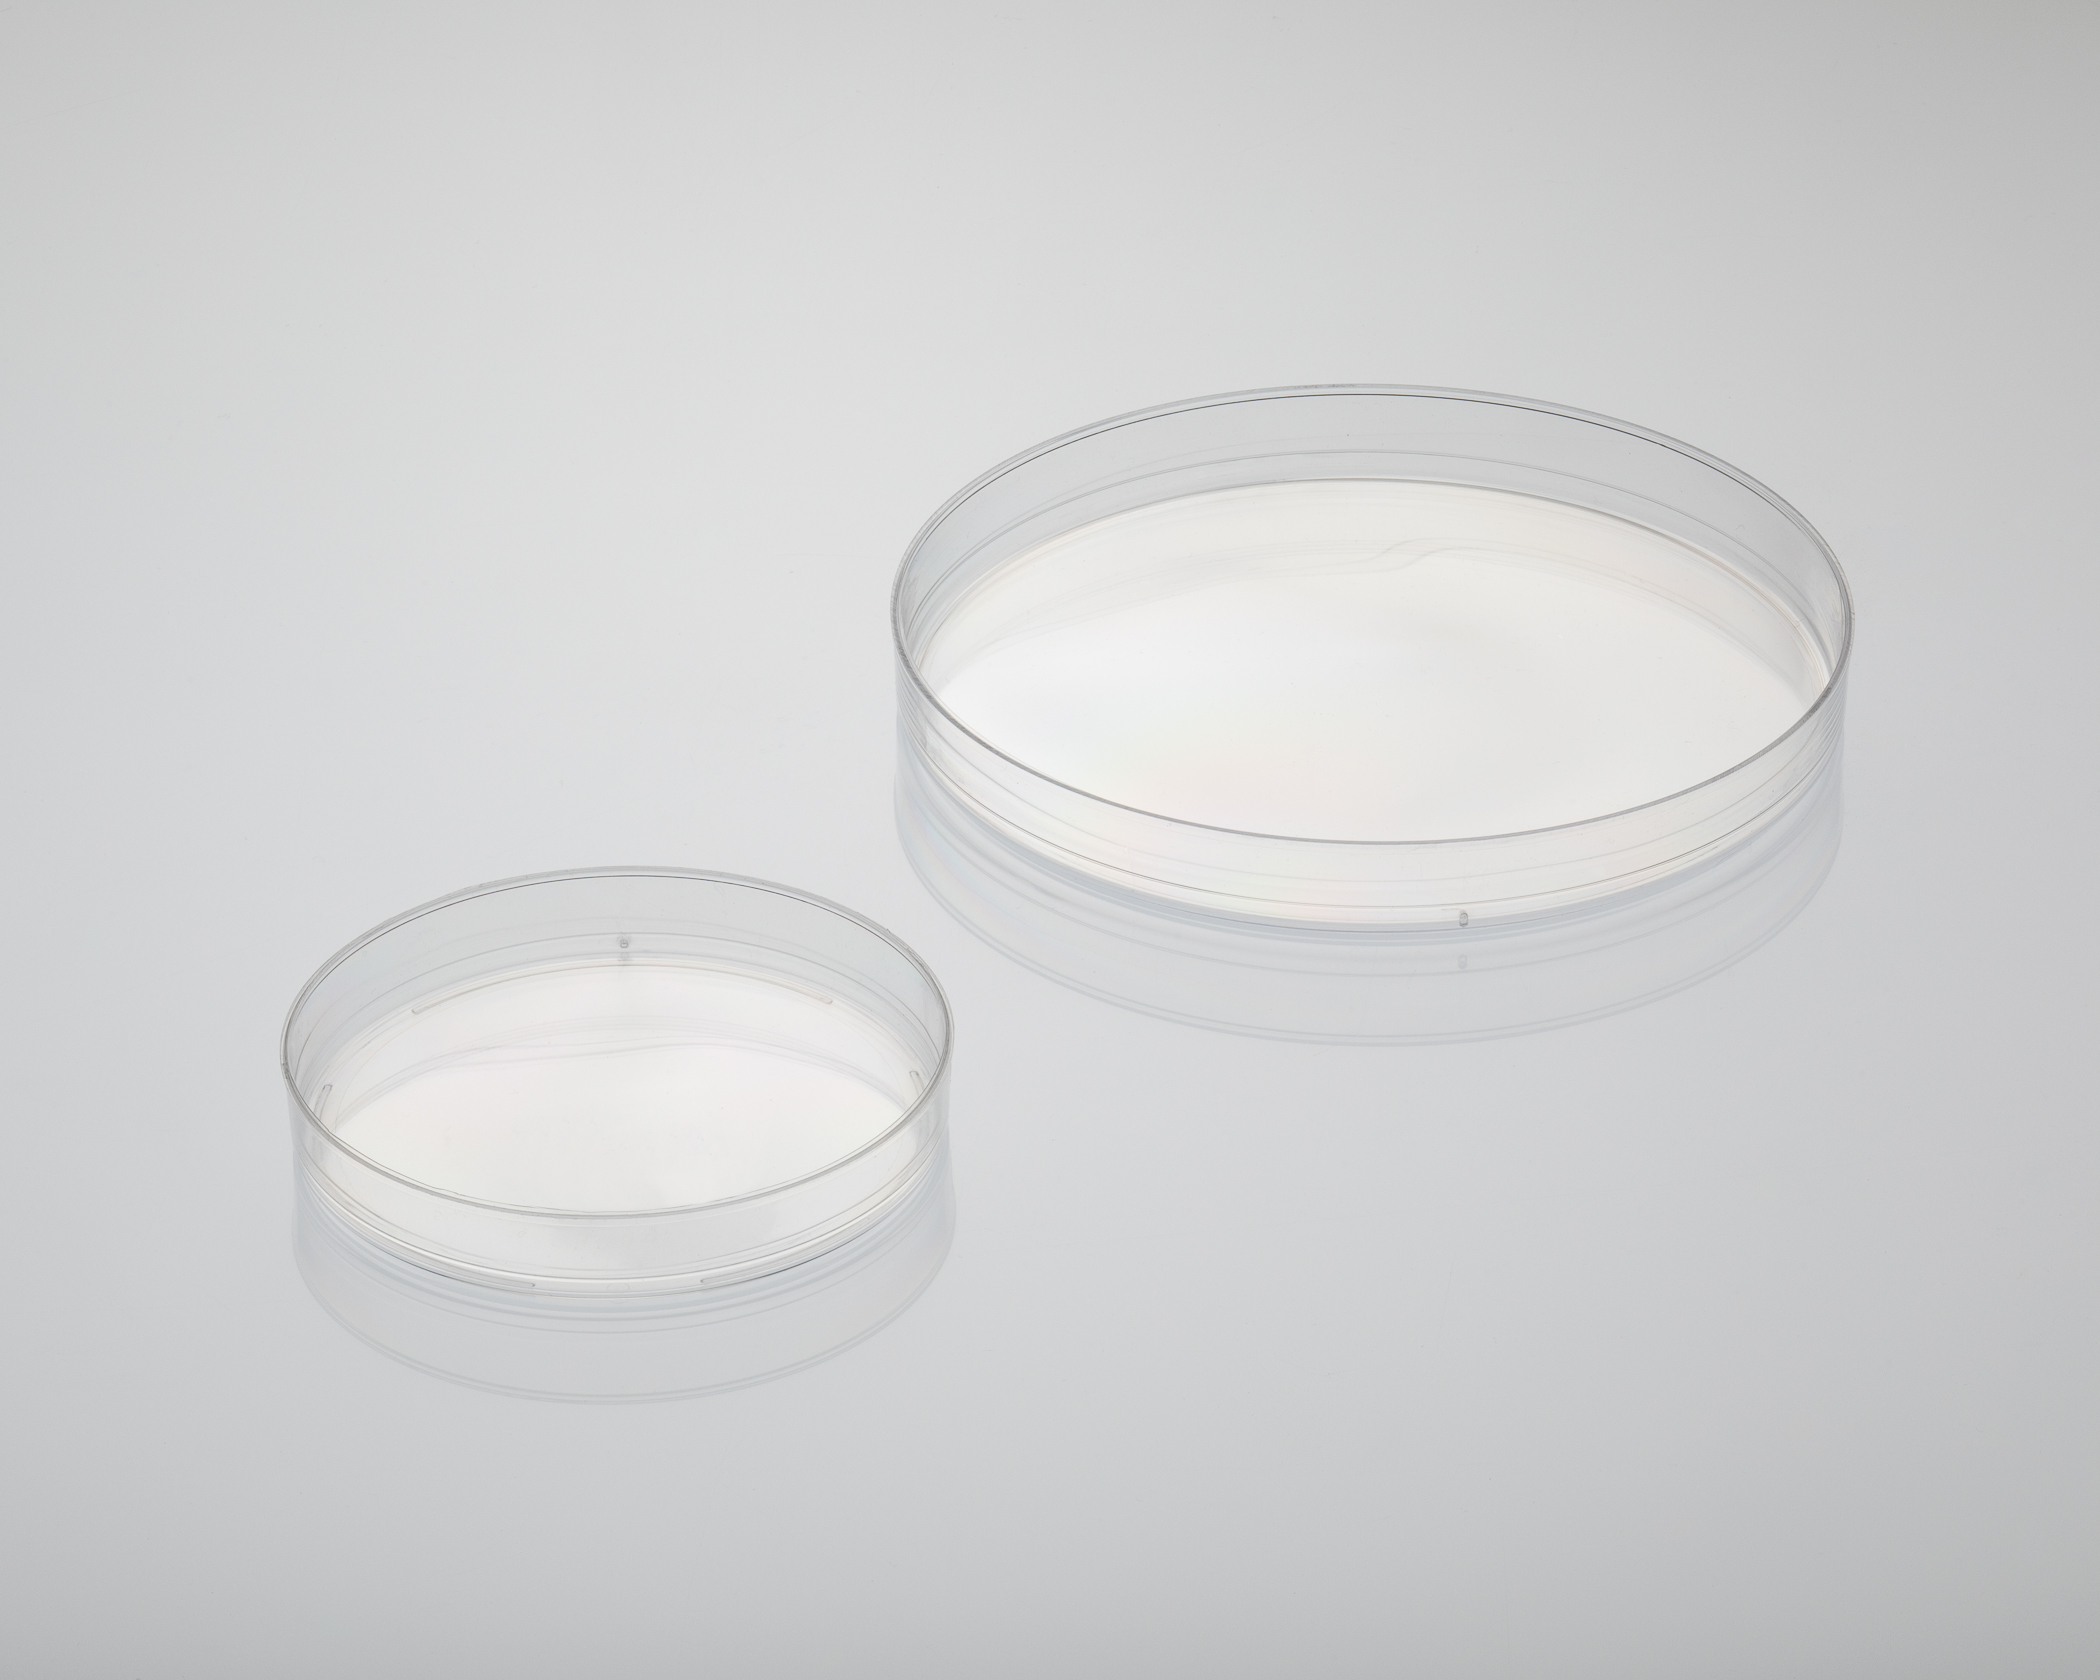 Fluorolab's FEP Petri Dish Liners - made from Teflon™ FEP ...